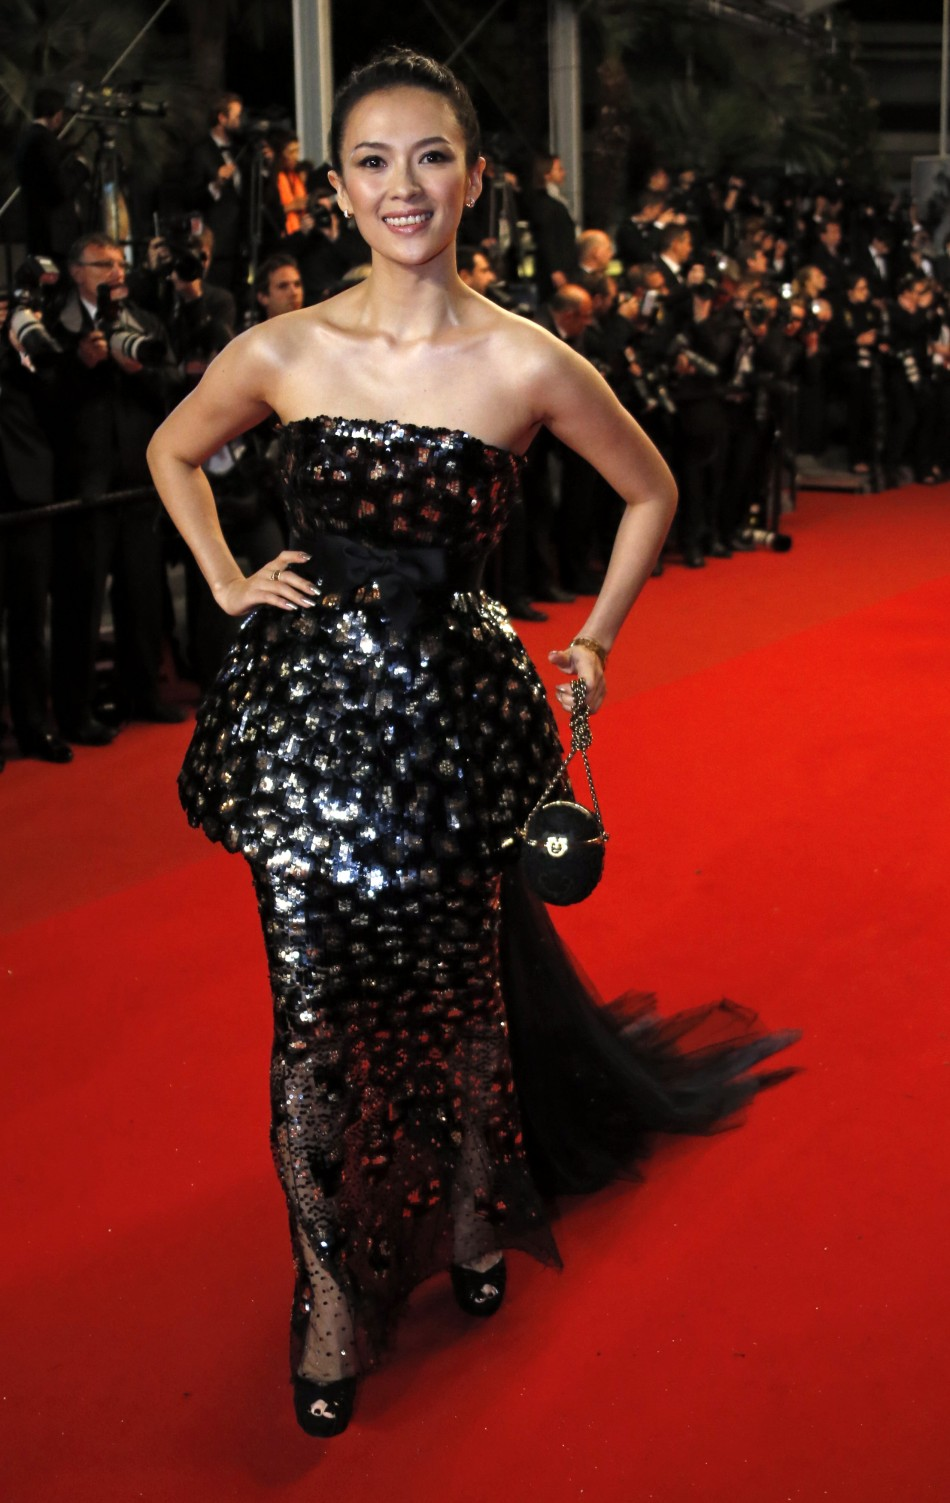 Jury member of Film selection Un Certain Regard actress Zhang Ziyi poses on the red carpet as she arrives for the screening of the film Only God Forgives in competition during the 66th Cannes Film Festival in Cannes May 22, 2013.